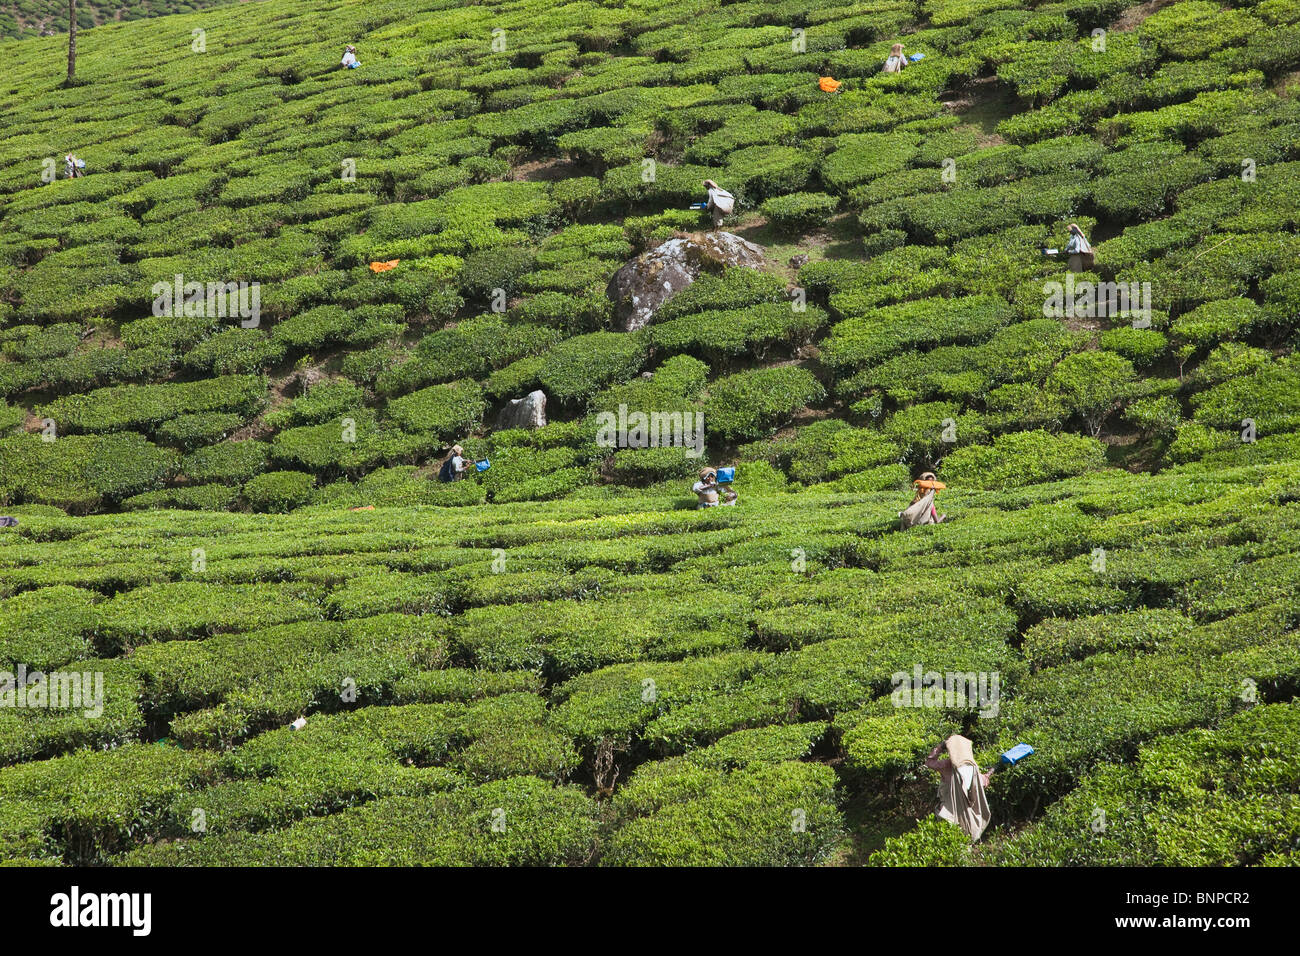 Munnar has sprawling tea plantations where most of the tea is still picked by hand. Munnar, Kerala, India. - Stock Image